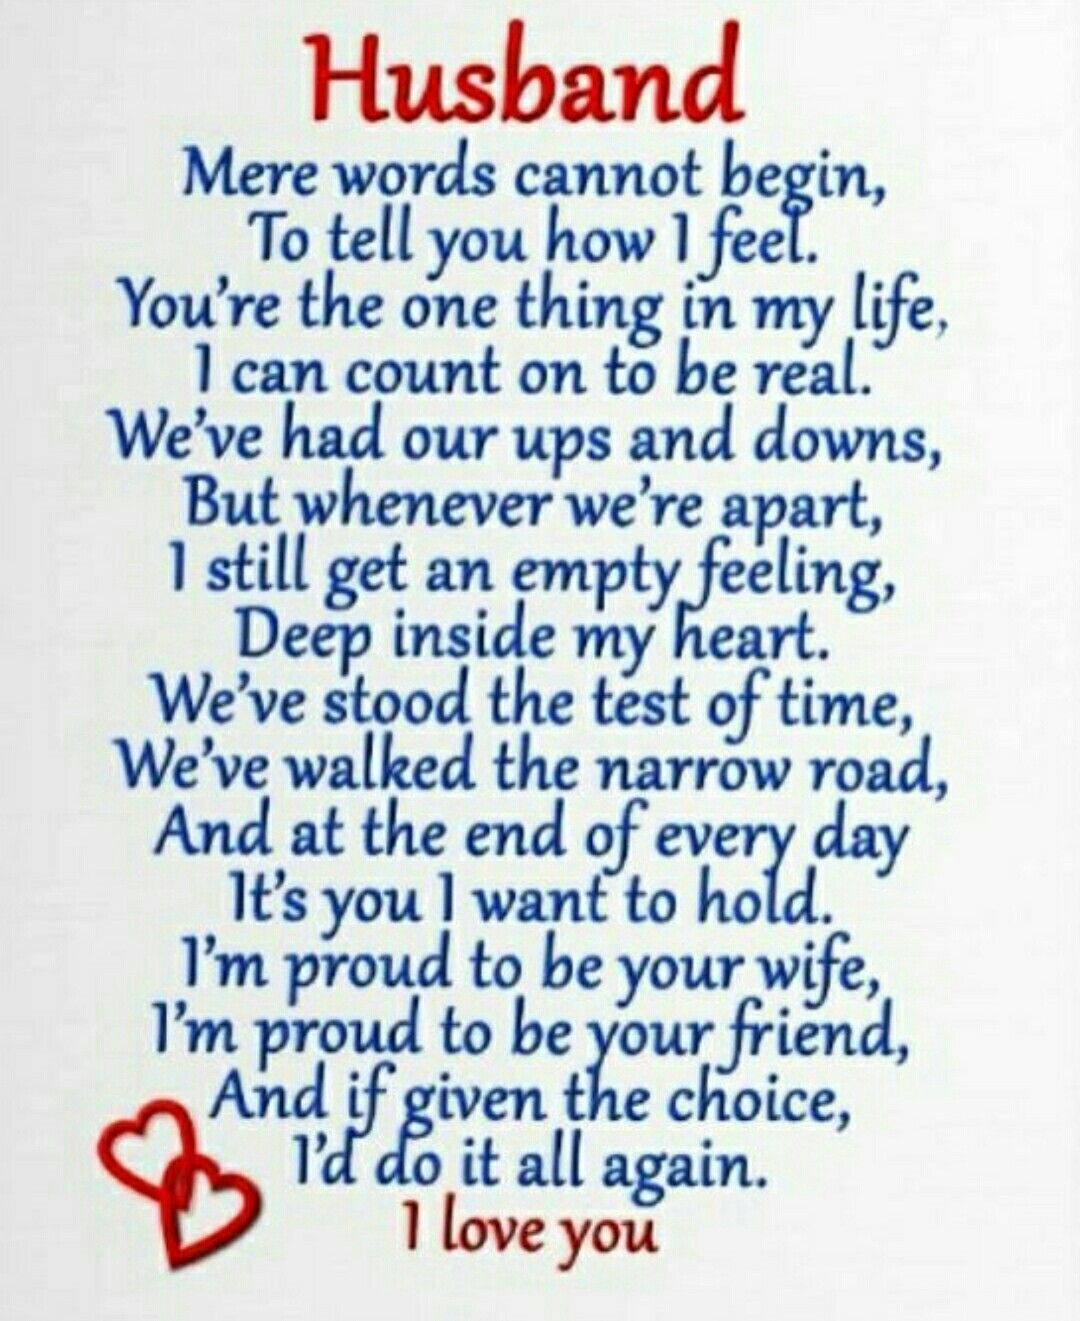 Husband Soulmate Love Quotes : husband, soulmate, quotes, Future, Husband, Marriage, Soulmate, Quotes, Daily